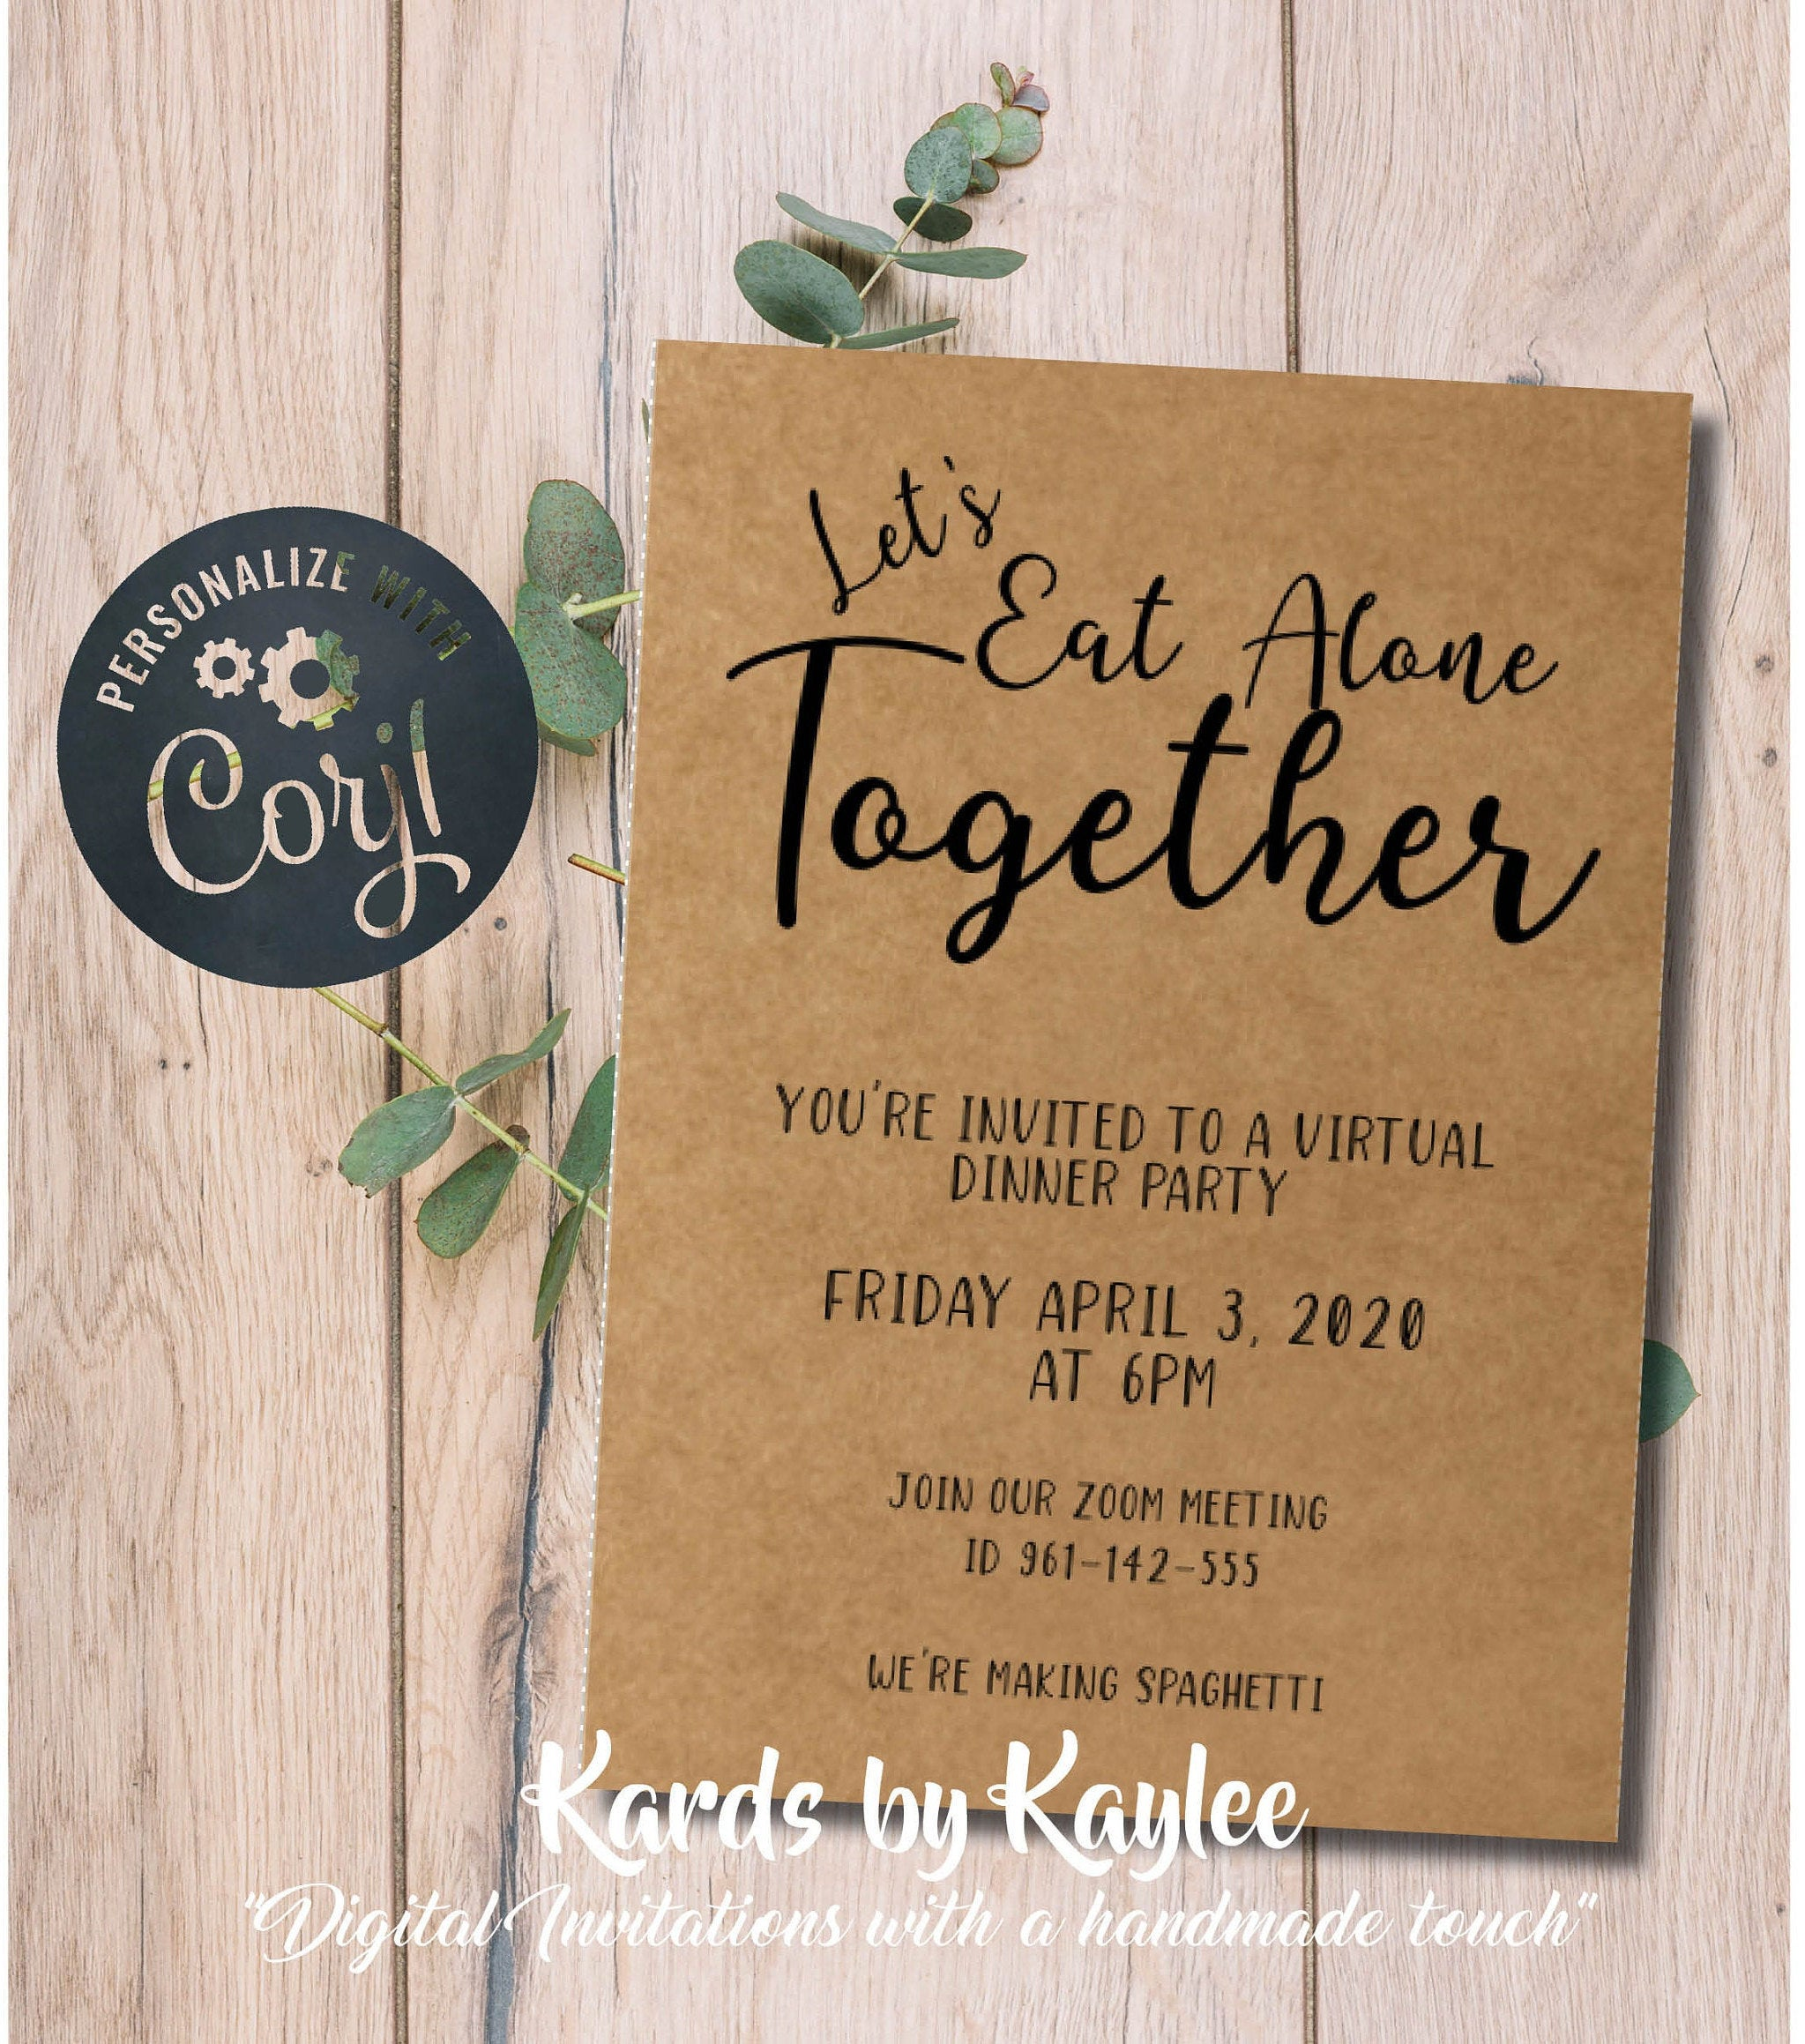 Virtual Dinner Party Invitation Instant Download Template - Kards by Kaylee